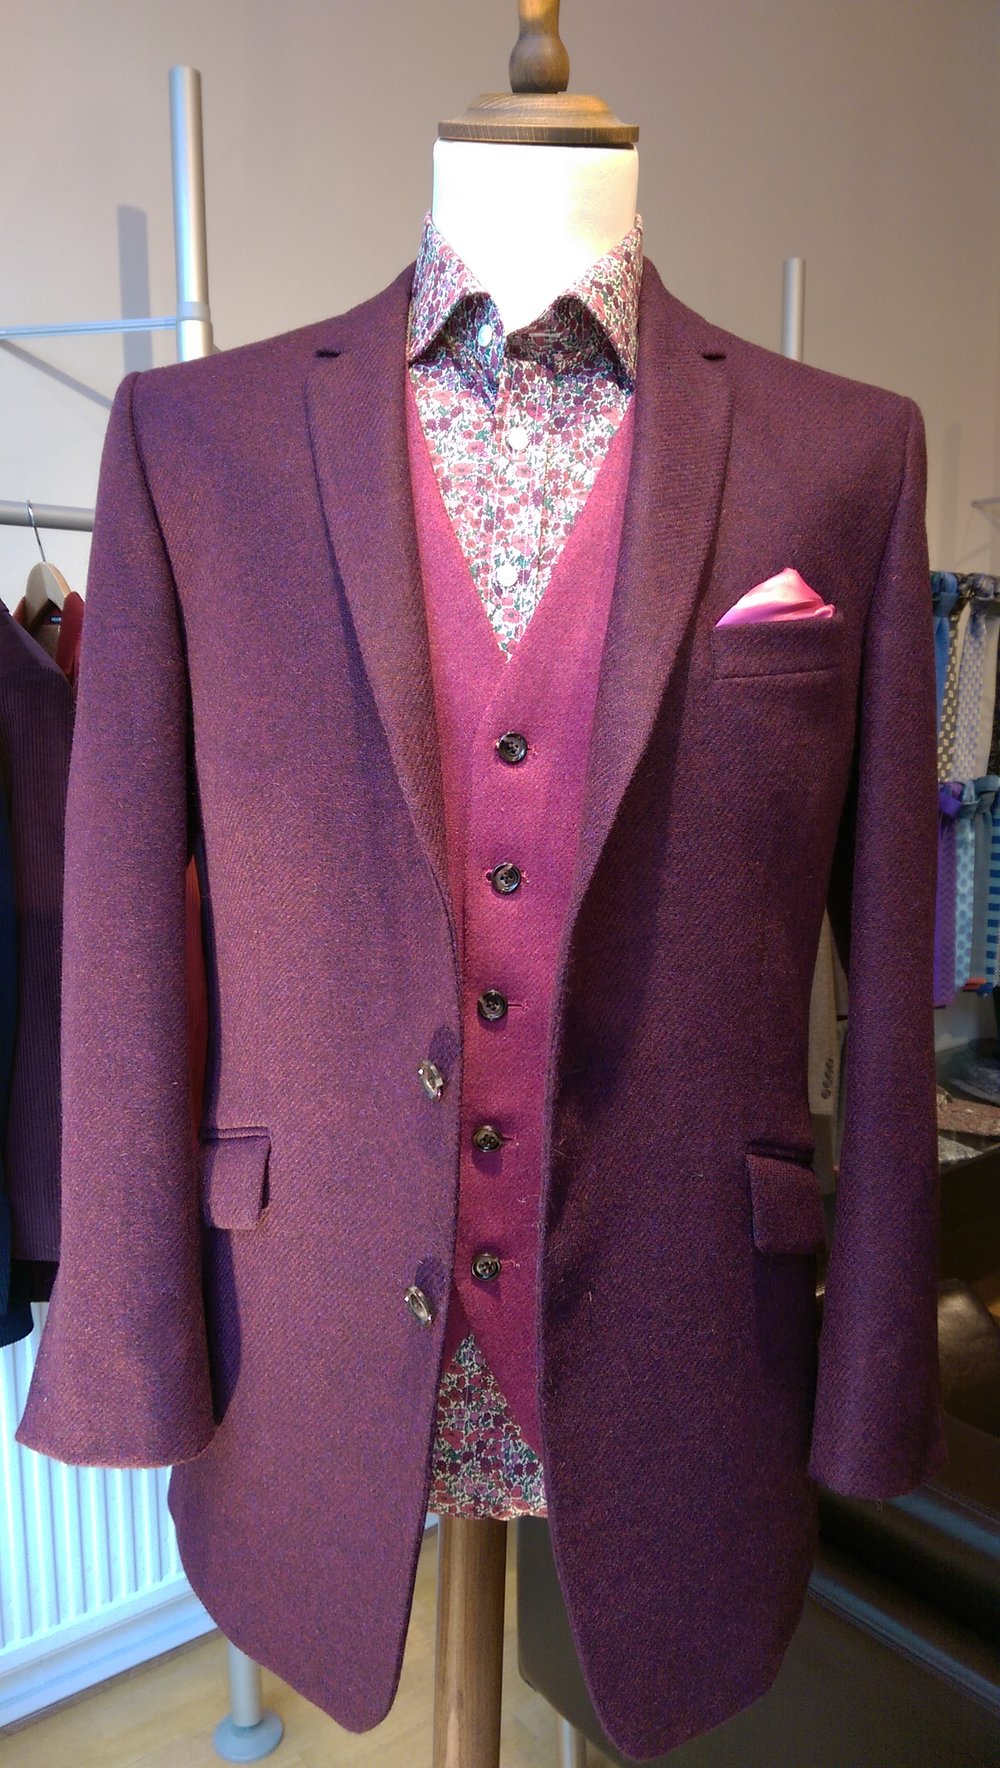 burgundy-tweed-wool-moon-pink-waistcoat-jacket-british-made-uk-tailoring-liberty-shirt.jpg